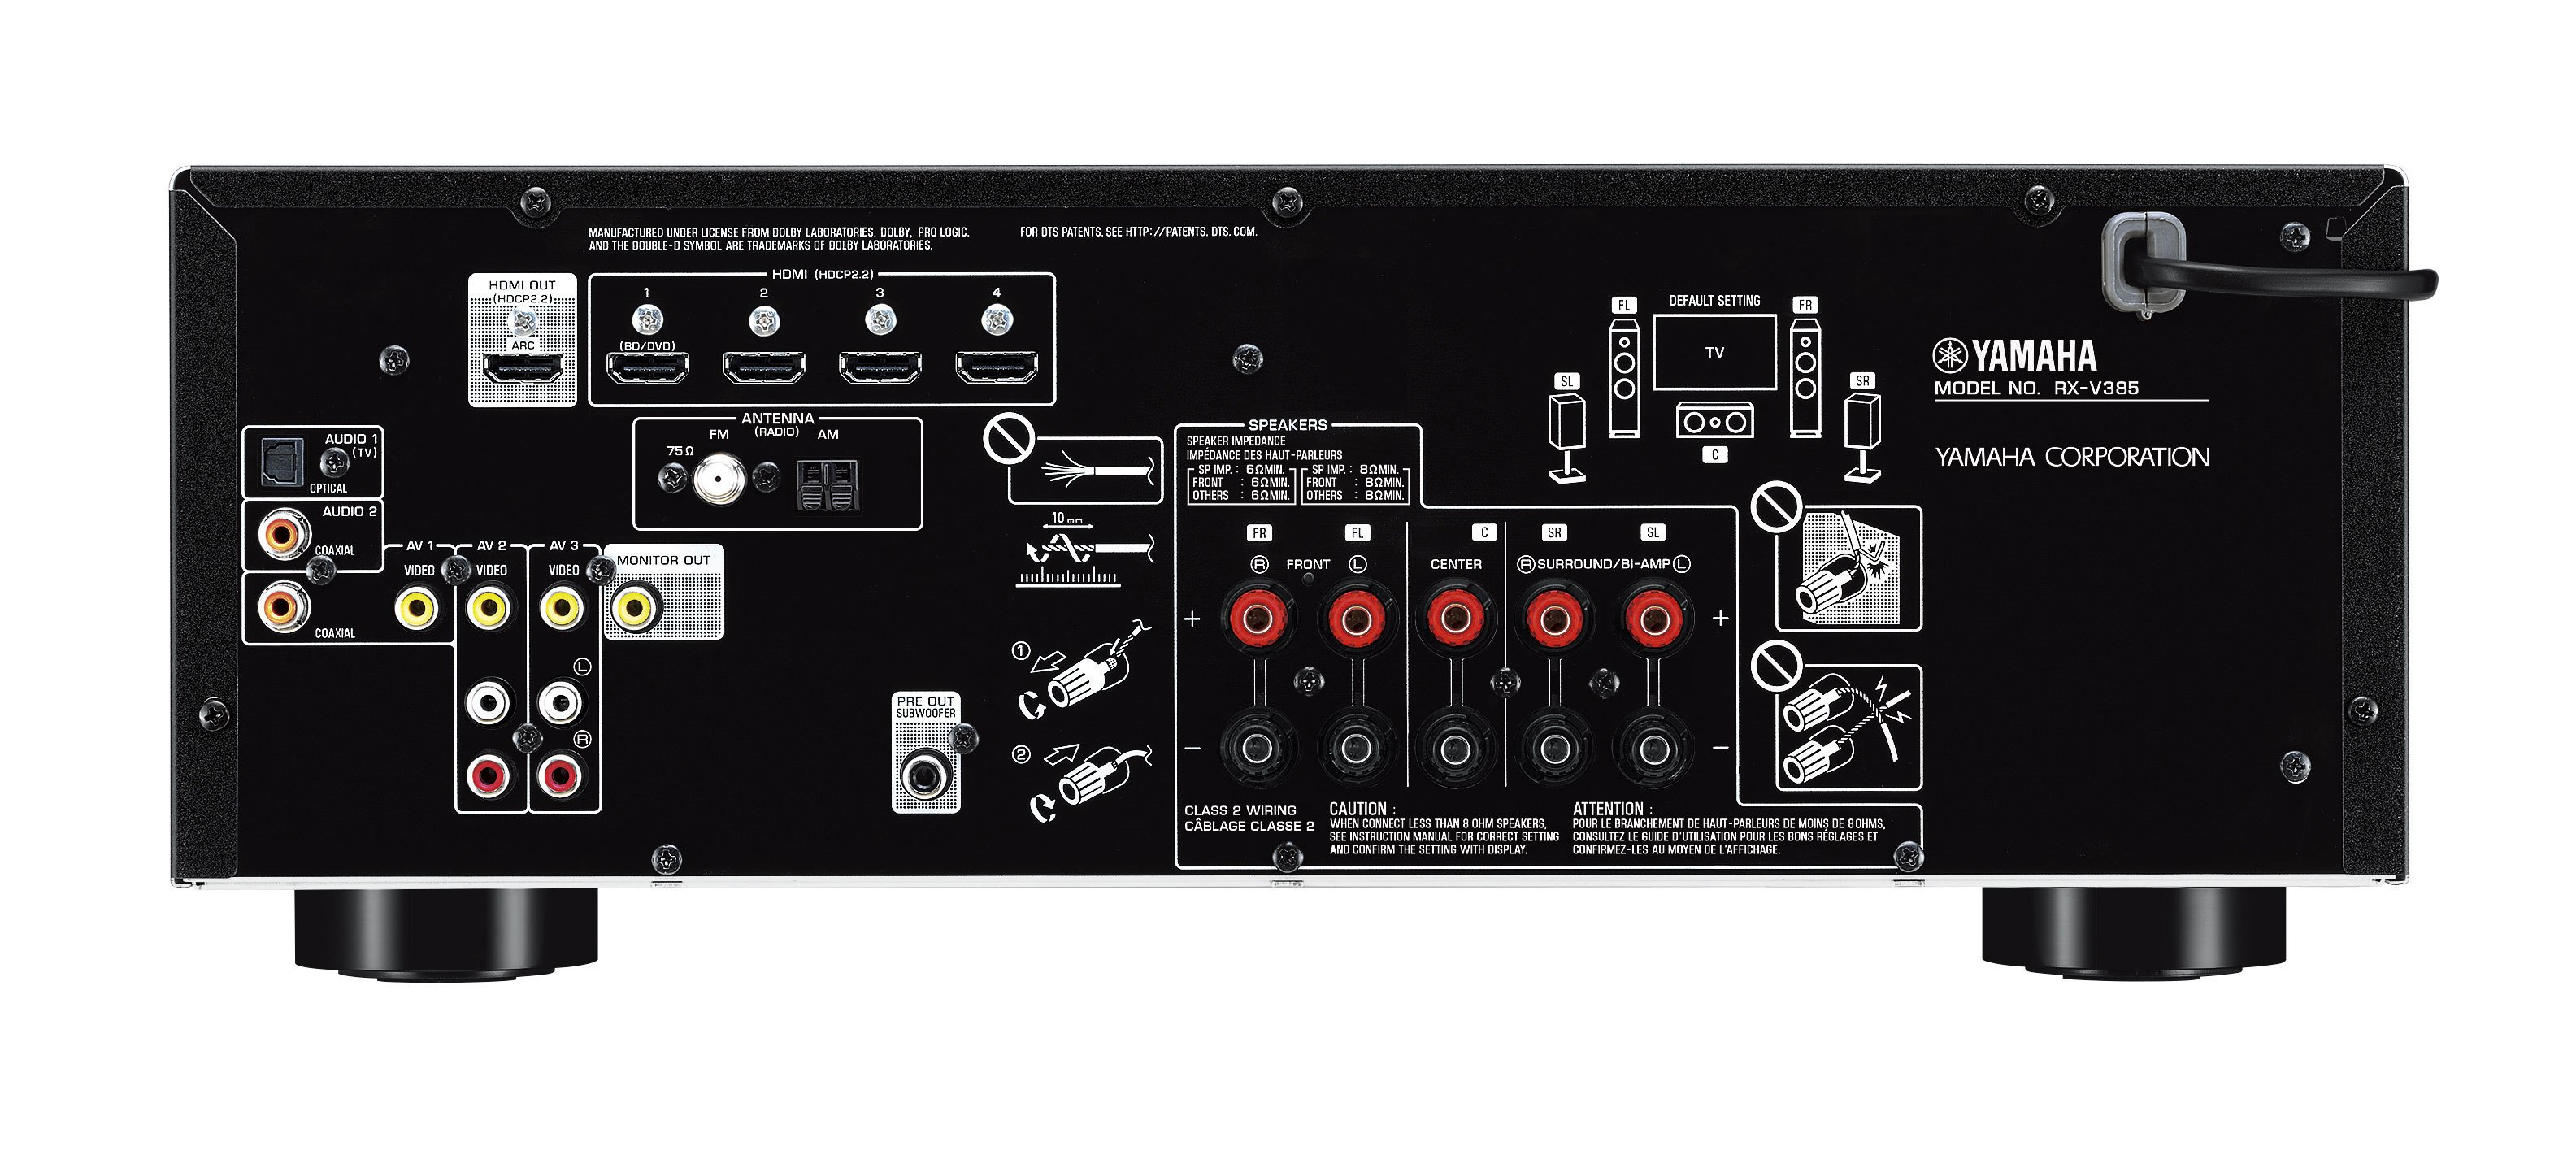 Rx V385 Overview Av Receivers Audio Visual Products Yamaha X Max Wiring Diagram 25995 29995